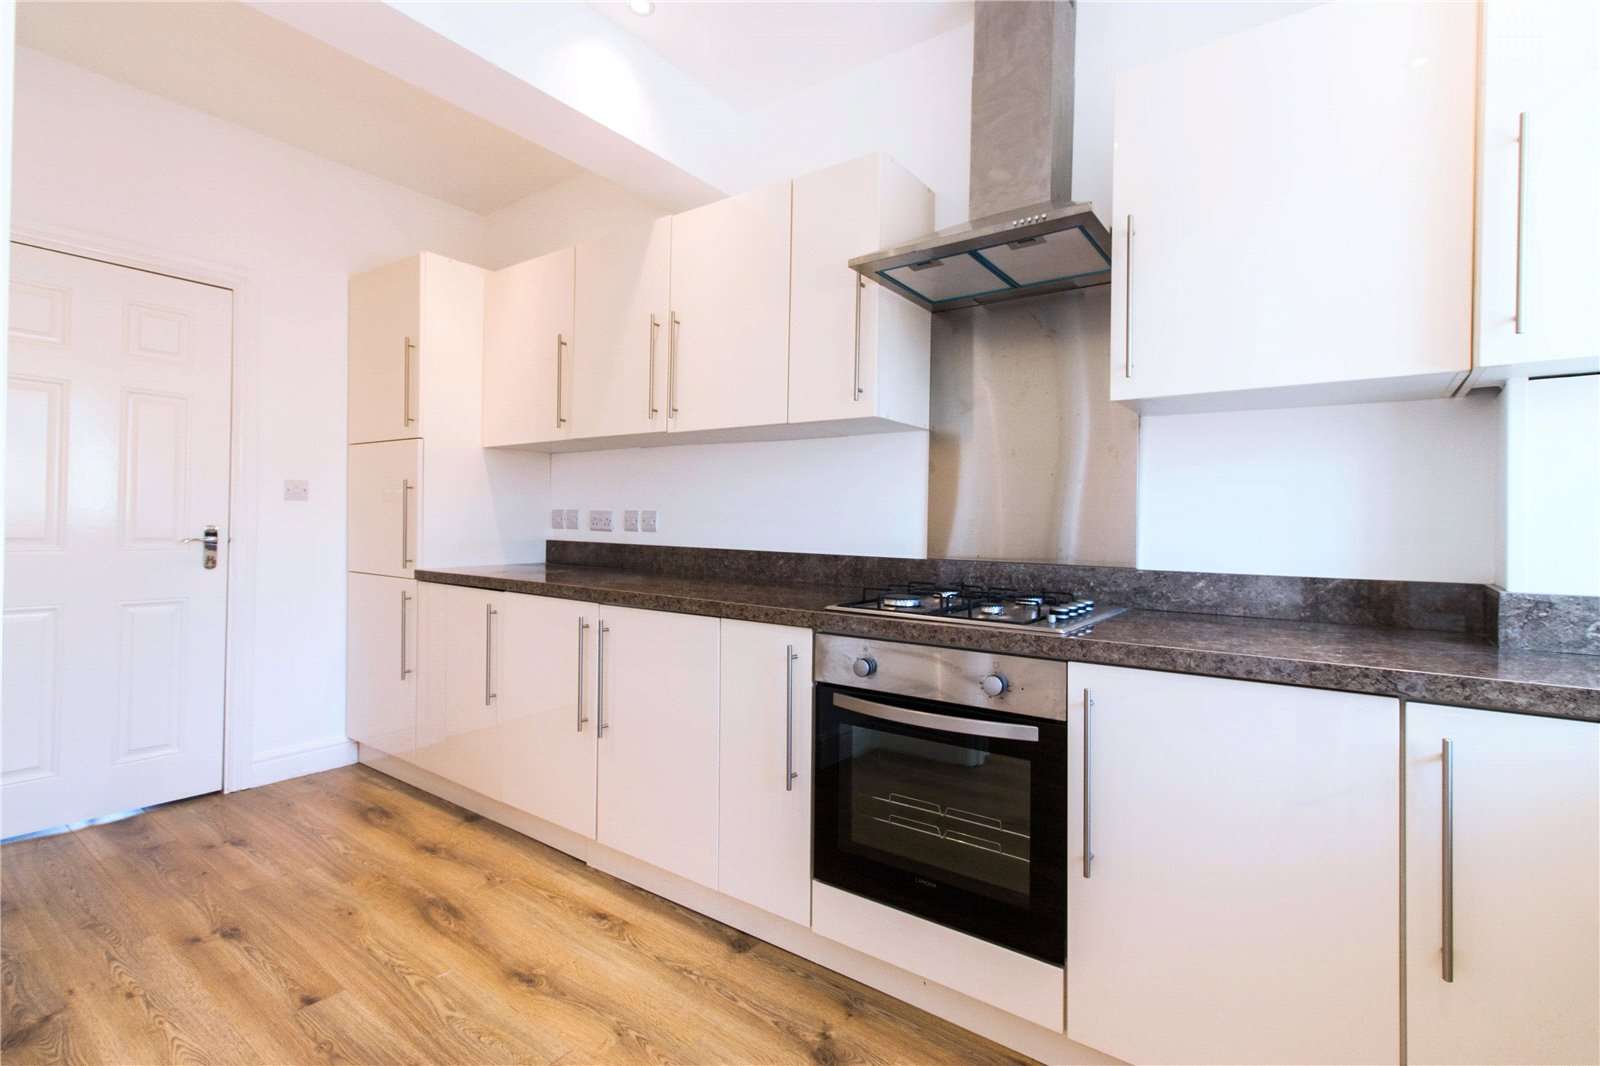 5 Bedrooms Terraced House for sale in St. Ursula Road Southall UB1